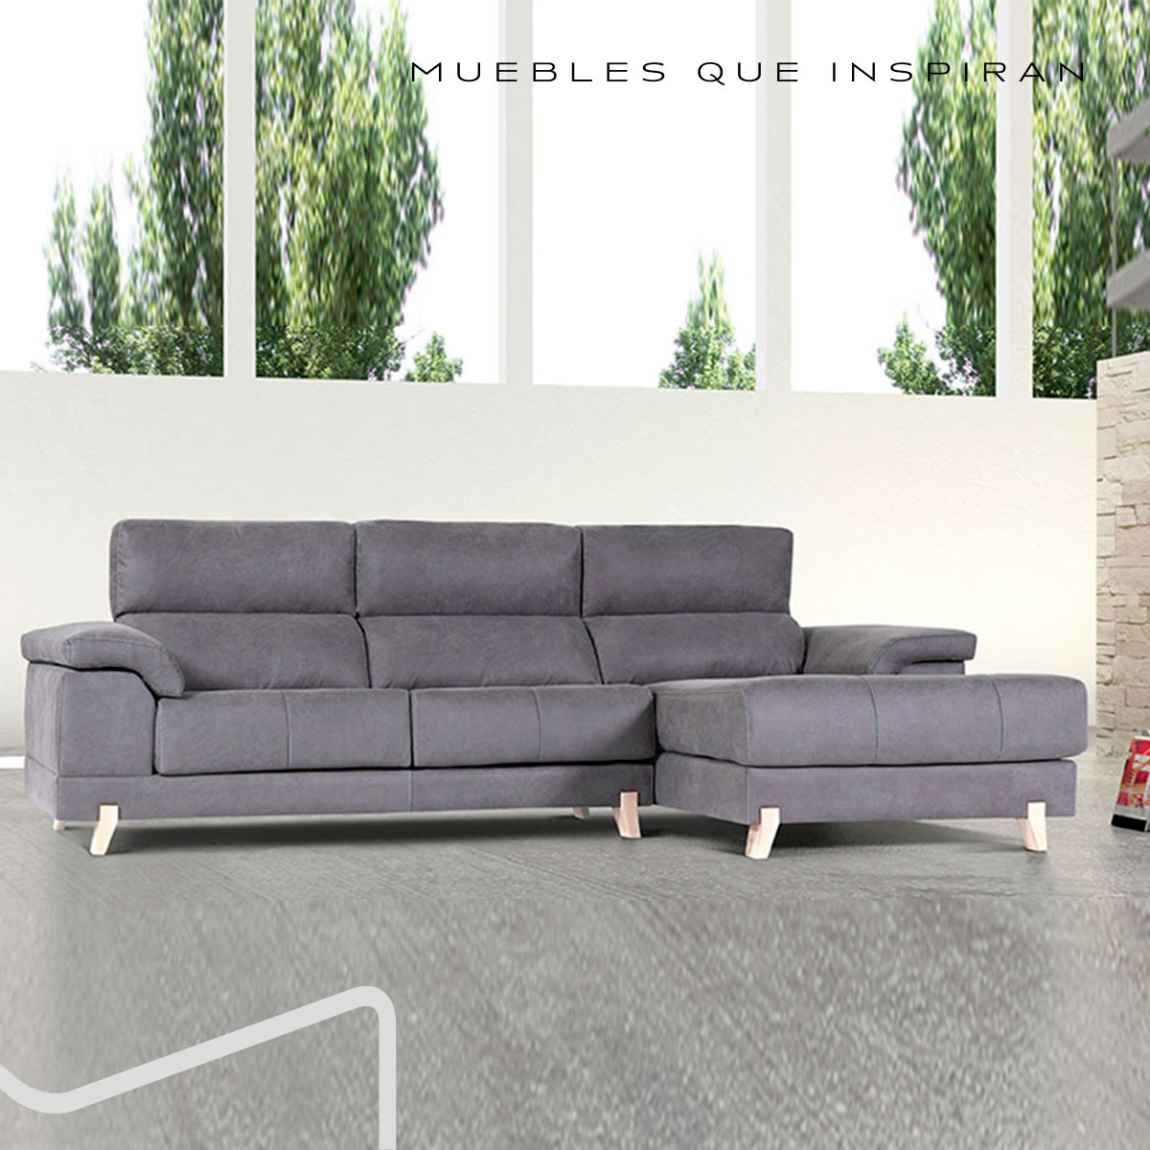 CHAISE LONGUE STYLE Mobles Rossi